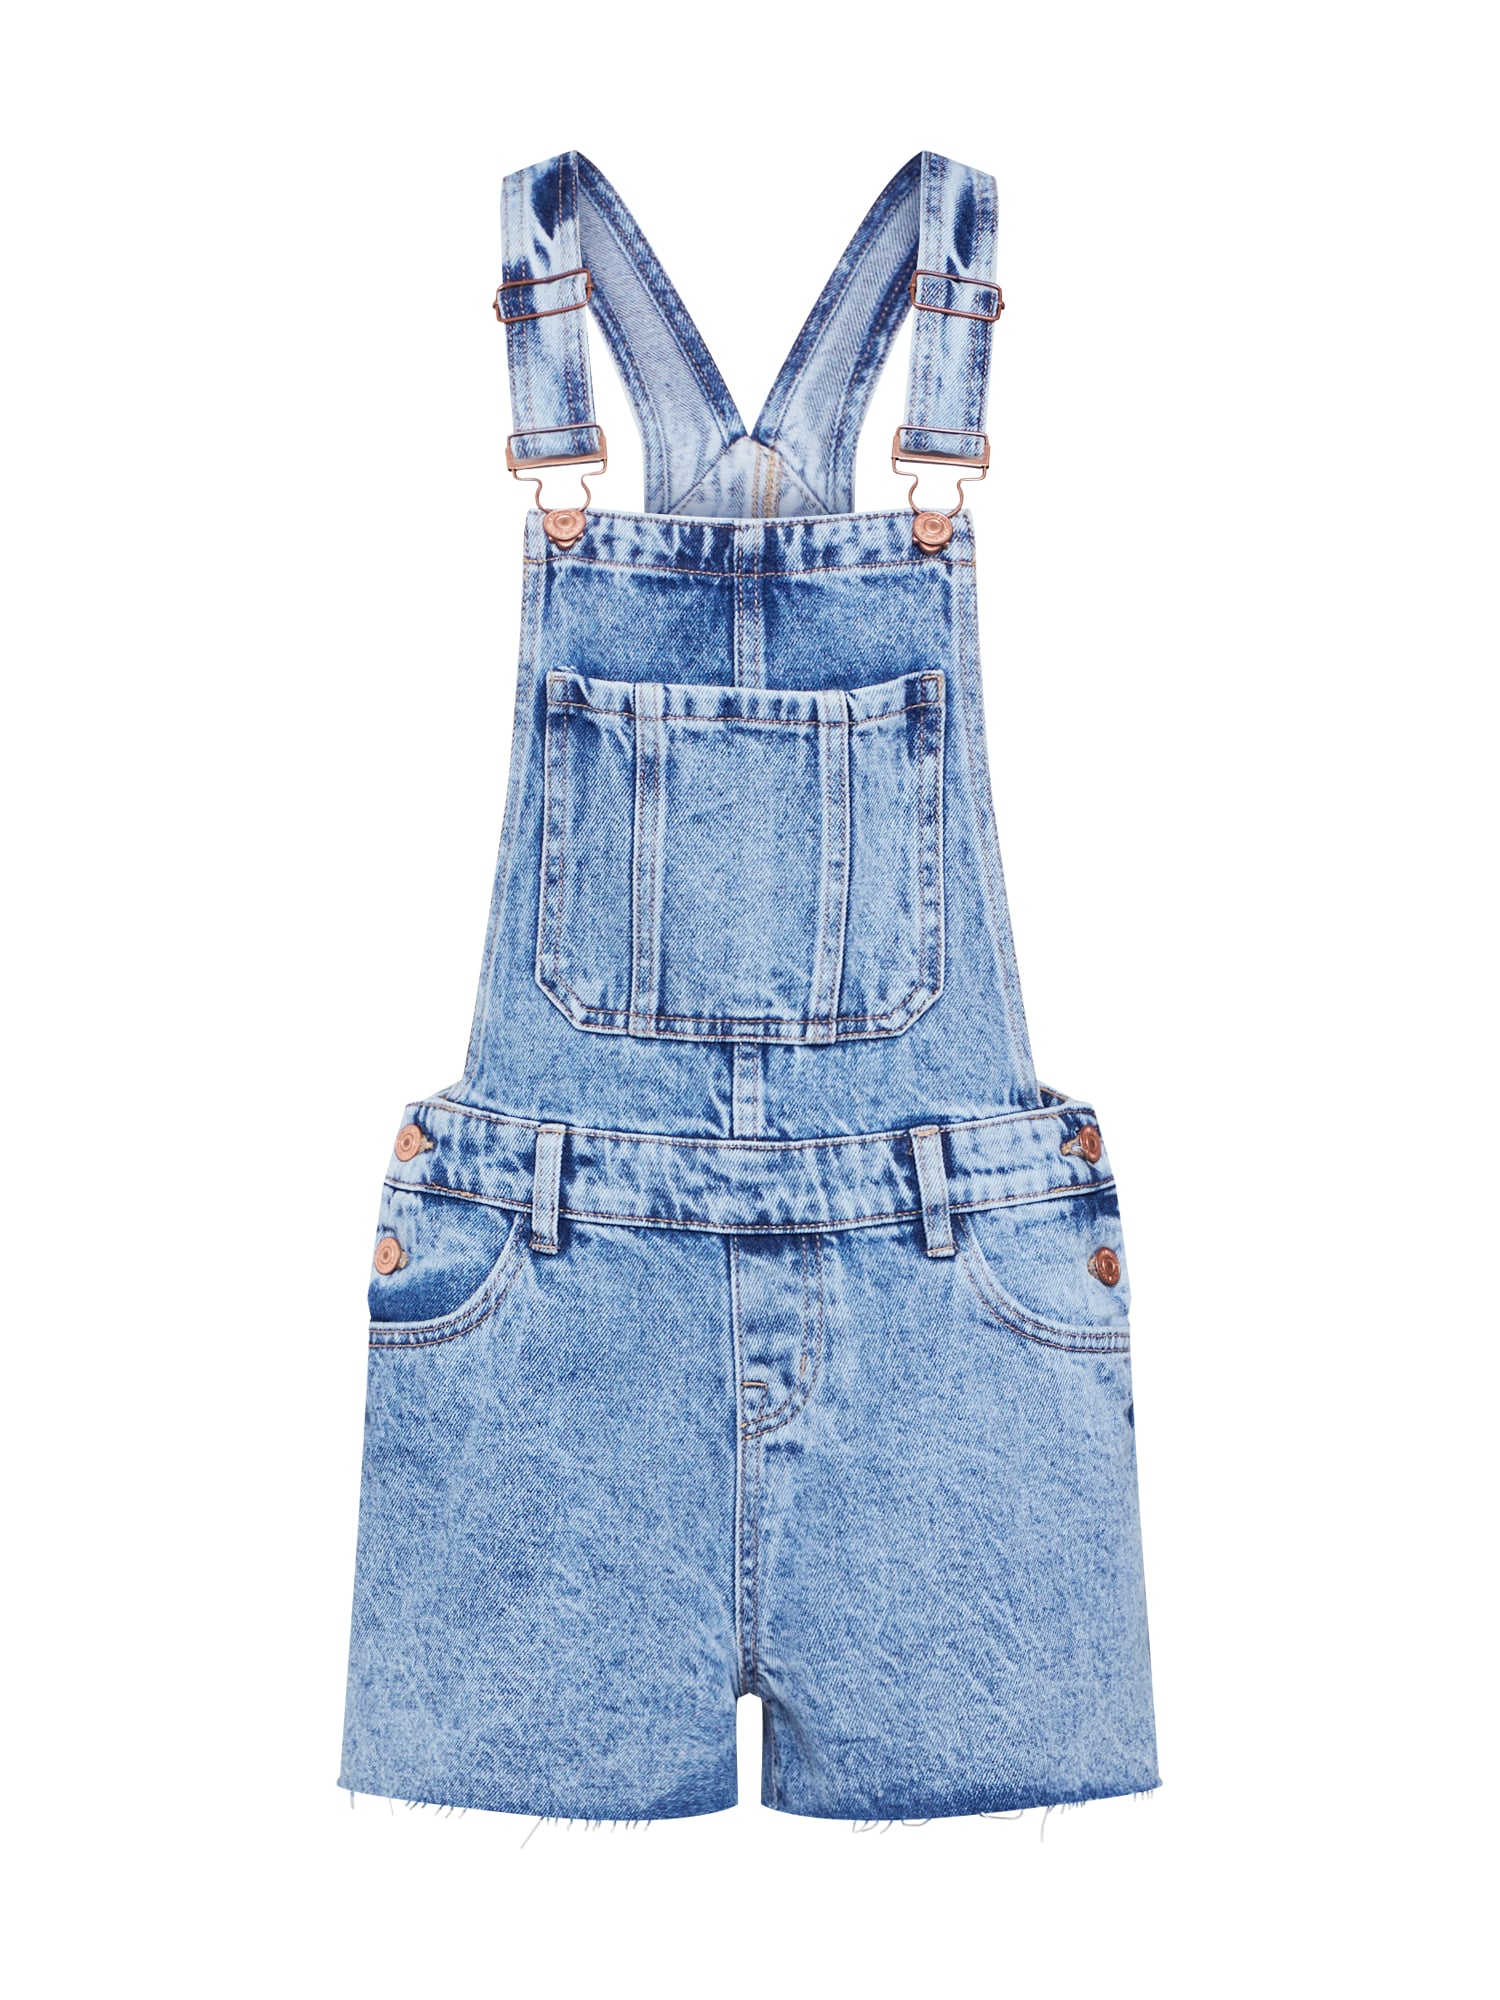 Džíny s laclem SHORT ACID CUT OFF HEM DUNGAREE LUDACRIS modrá džínovina NEW LOOK